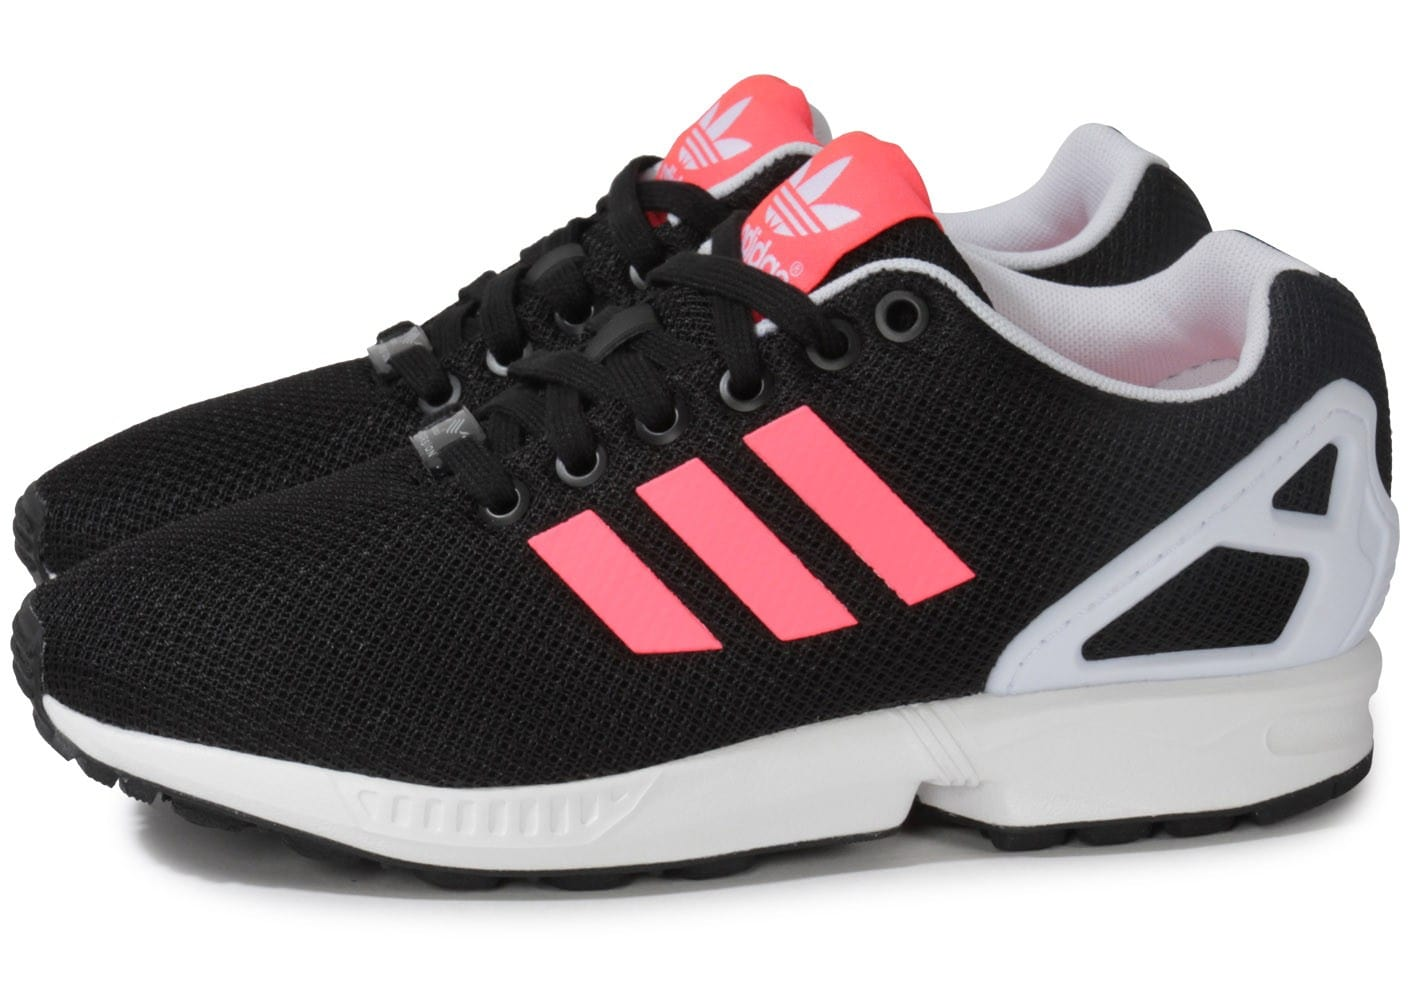 best authentic 1adfe c0a07 chaussure femme adidas zx flux